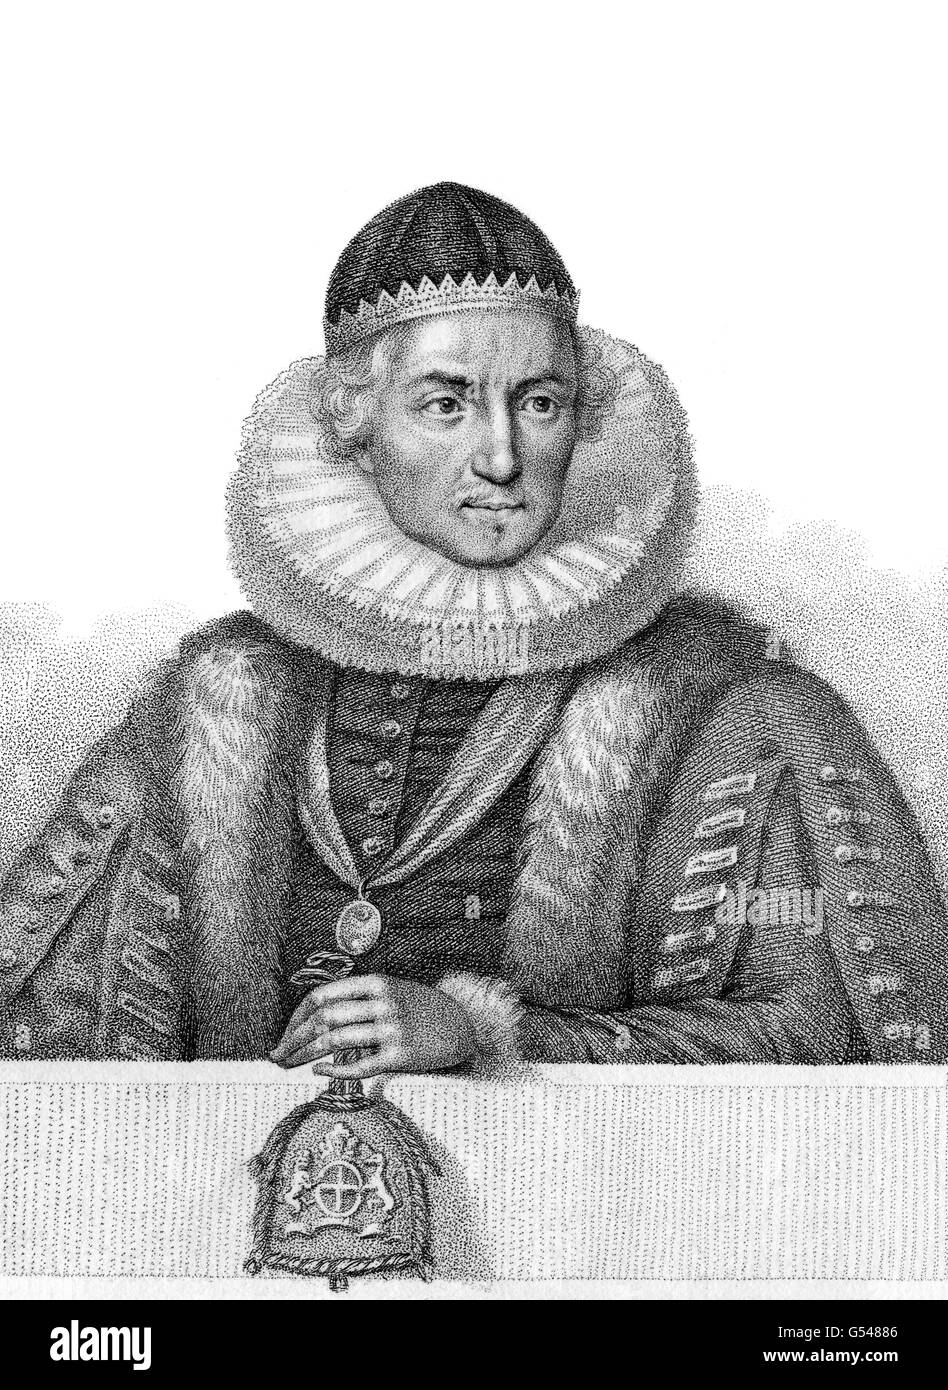 Henry Montagu, 1st Earl of Manchester, c. 1563-1642, an English judge, politician and peer - Stock Image